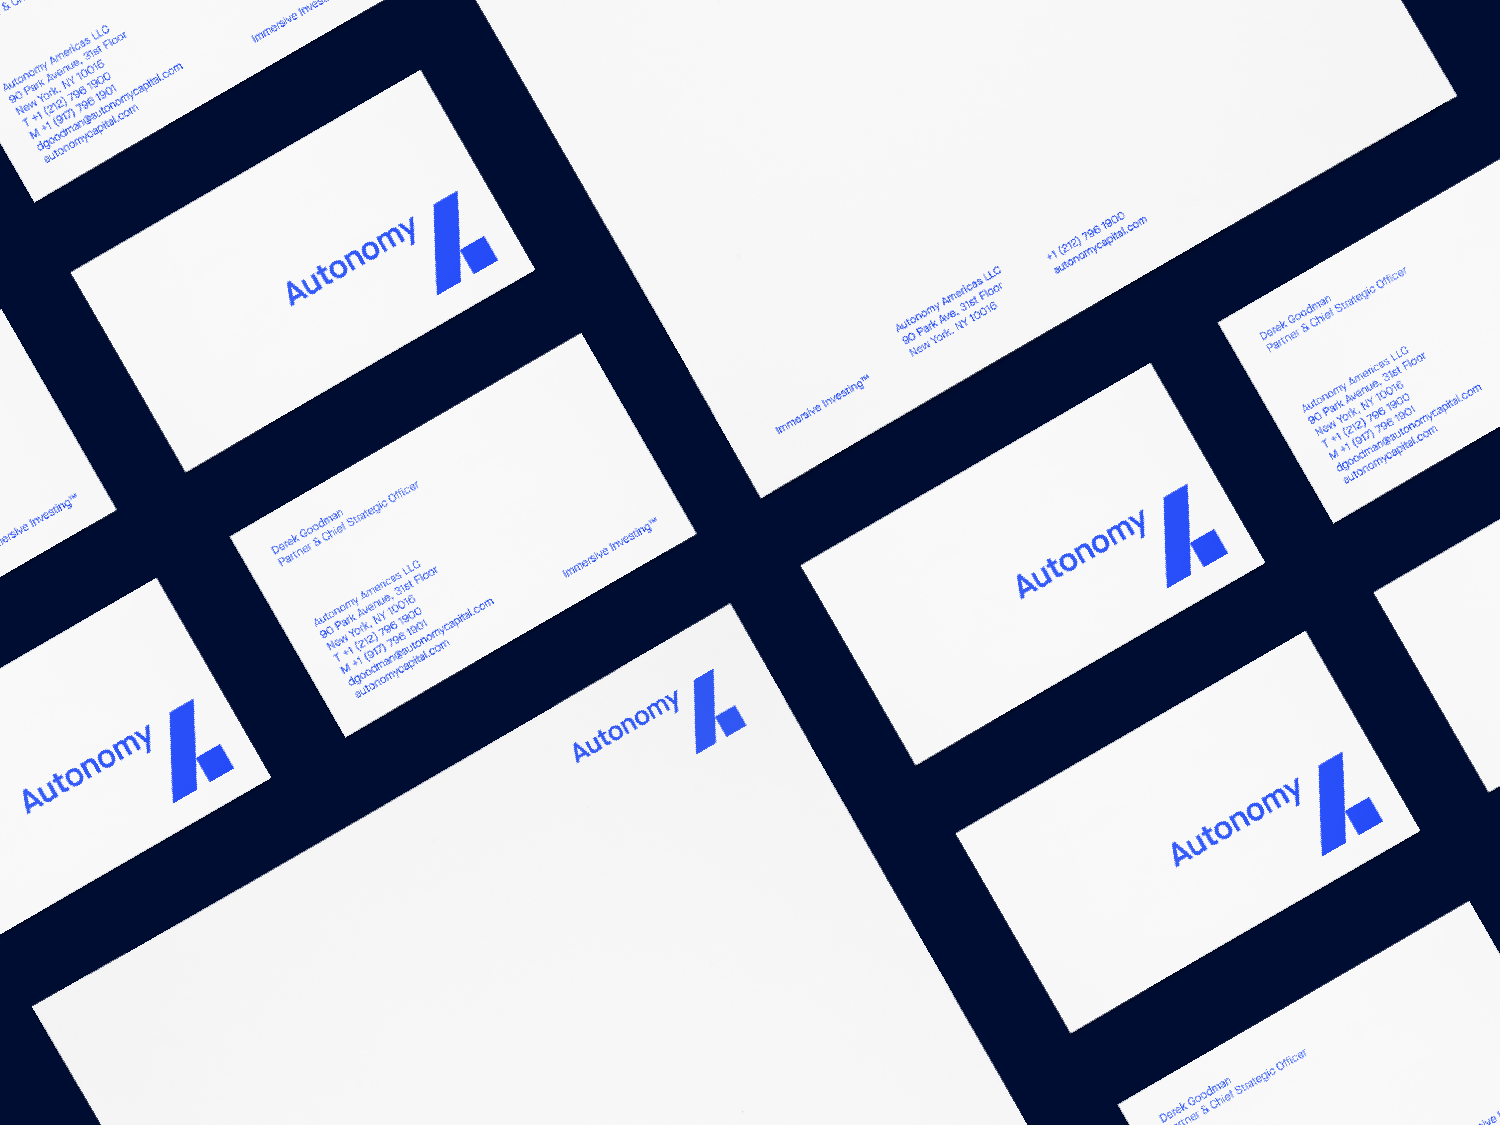 Autonomy business cards and letterhead